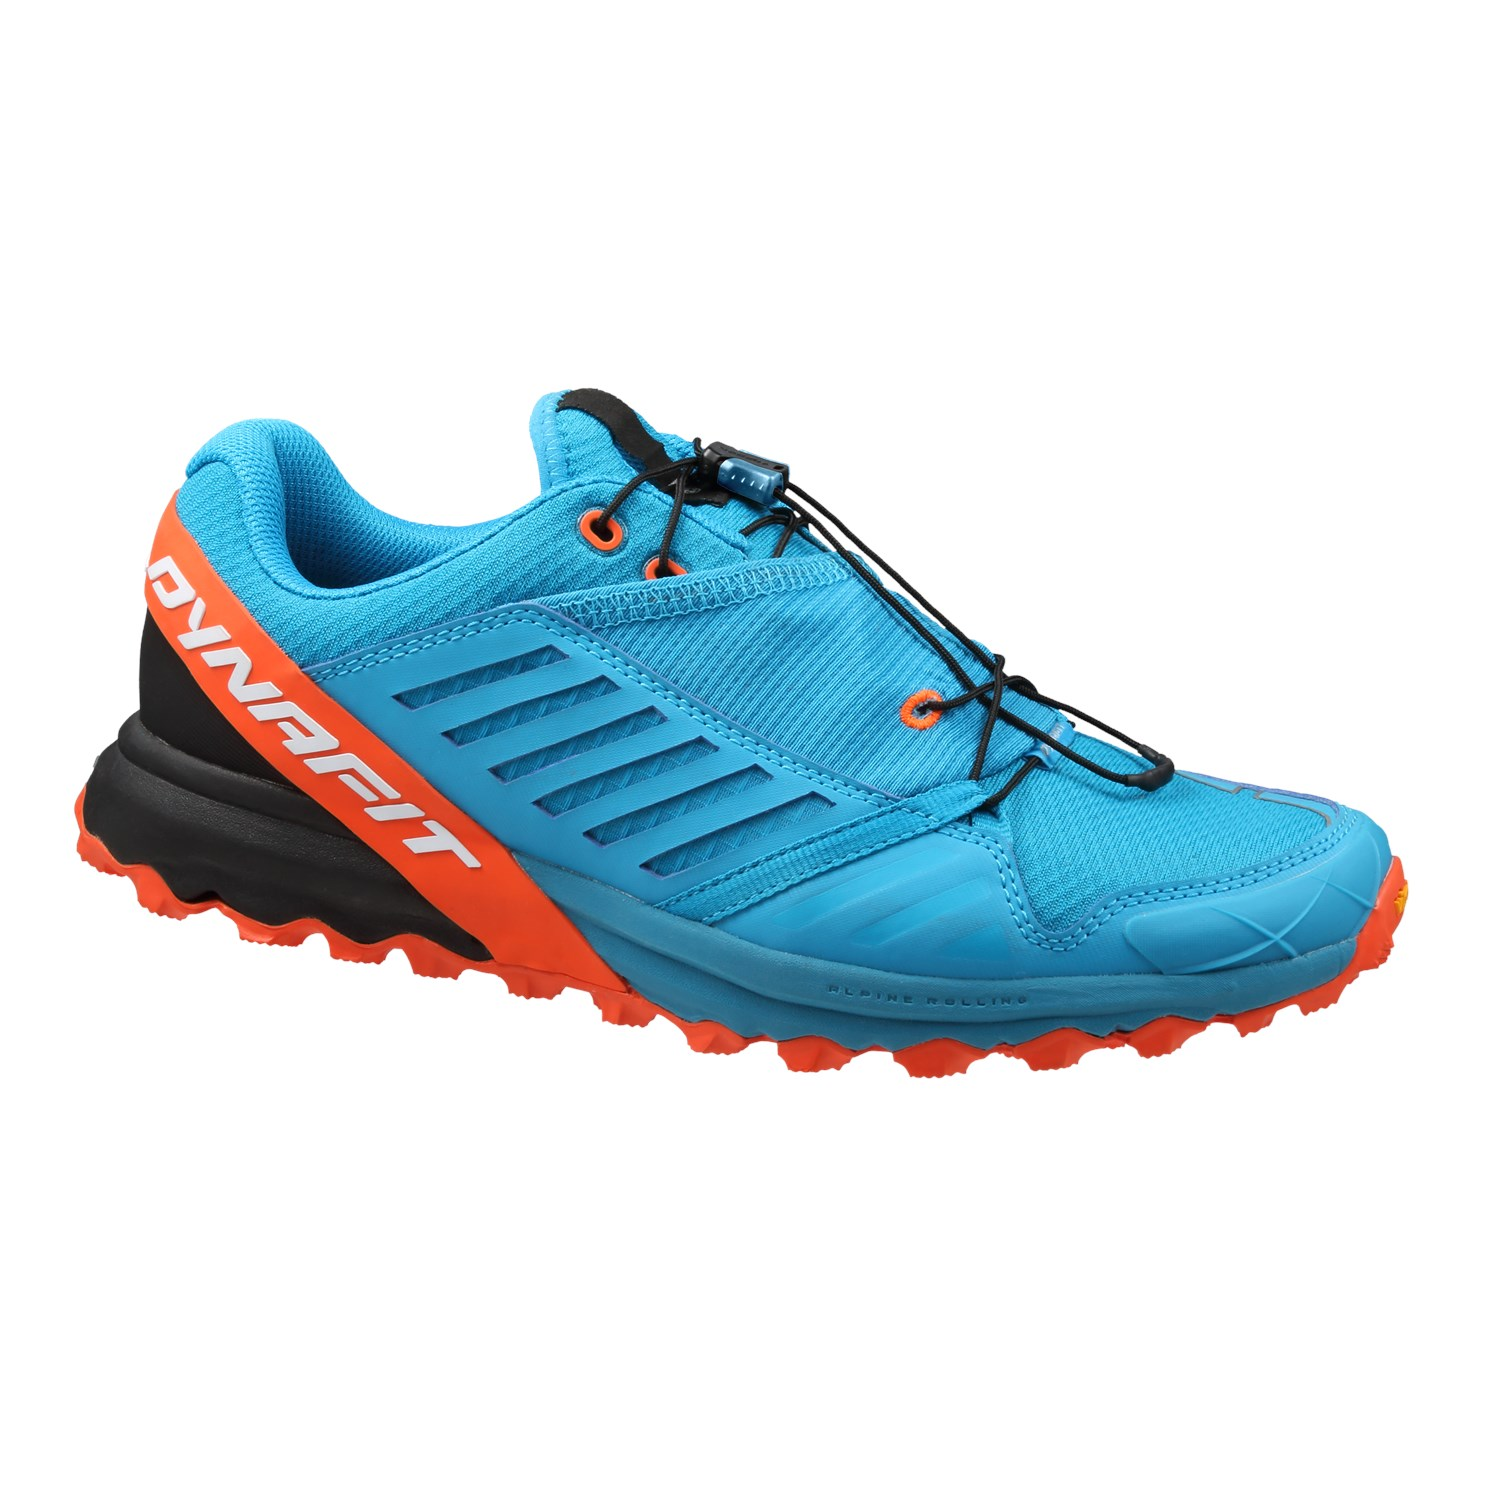 Here's a Great Deal on Dynafit Alpine Pro Trail Running Shoe